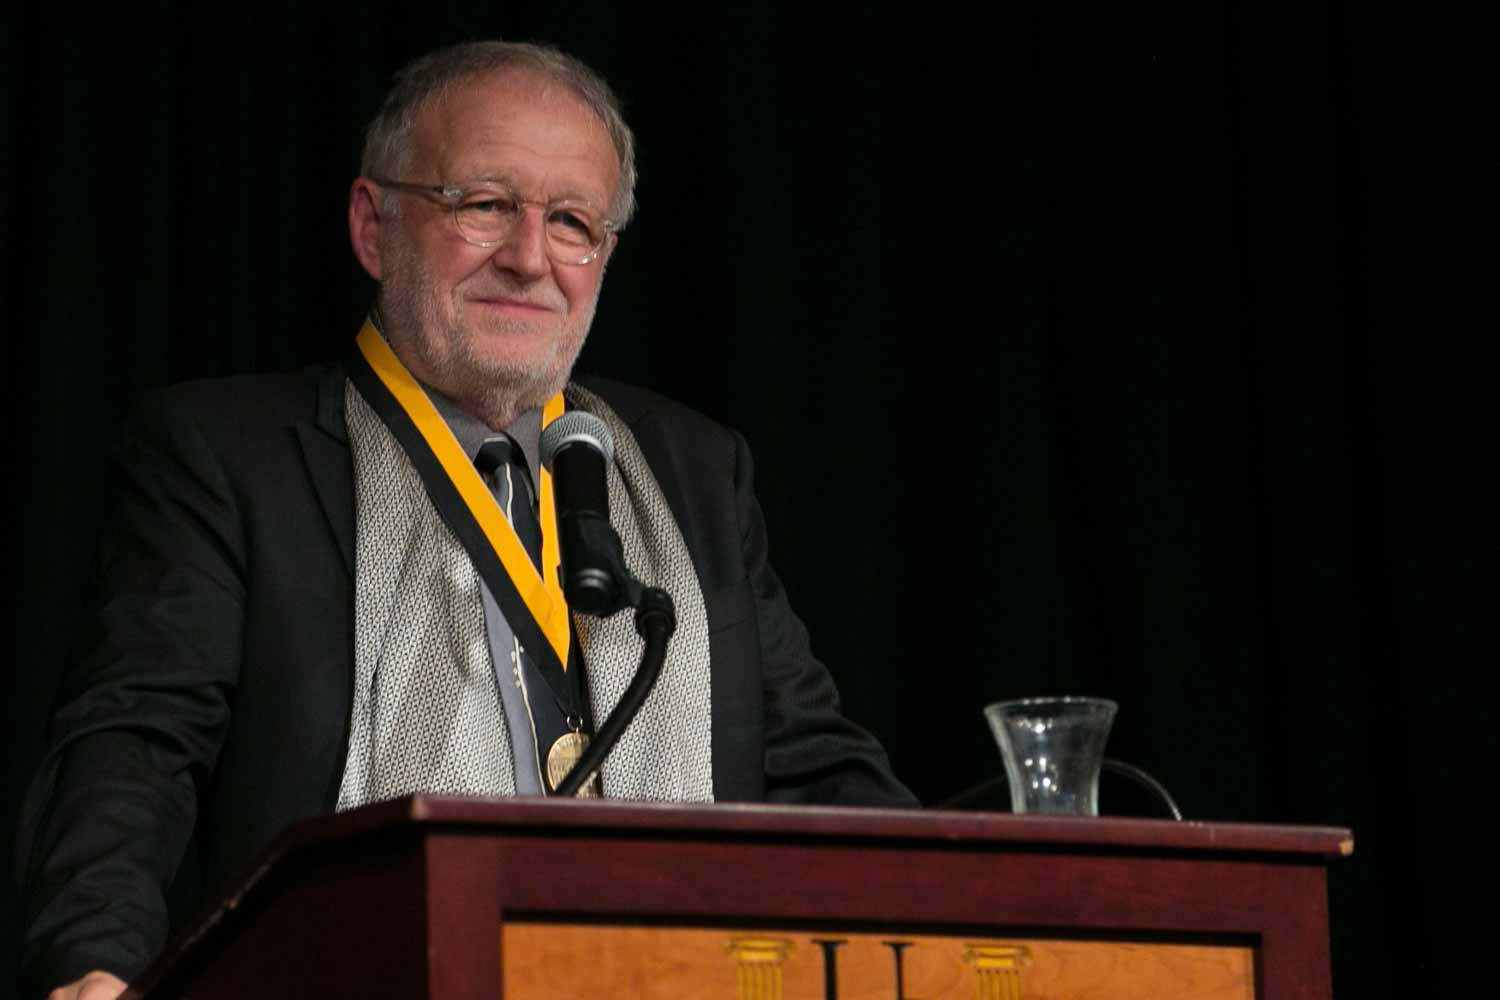 """Gerd Ludwig accepts his honor medal. Soon after leaving Germany and moving to New York in the mid-1980s, Ludwig started photographing for National Geographic magazine. His focus on environmental issues and the socioeconomic changes following the dissolution of the Soviet Union resulted in his book, """"Broken Empire: After the Fall of the USSR,"""" a 10-year retrospective published by National Geographic in 2001 in the U.S., Germany and Korea. Ludwig's ongoing coverage of post-Soviet Russia has garnered his distinction as the world's foremost color photographer documenting the region."""